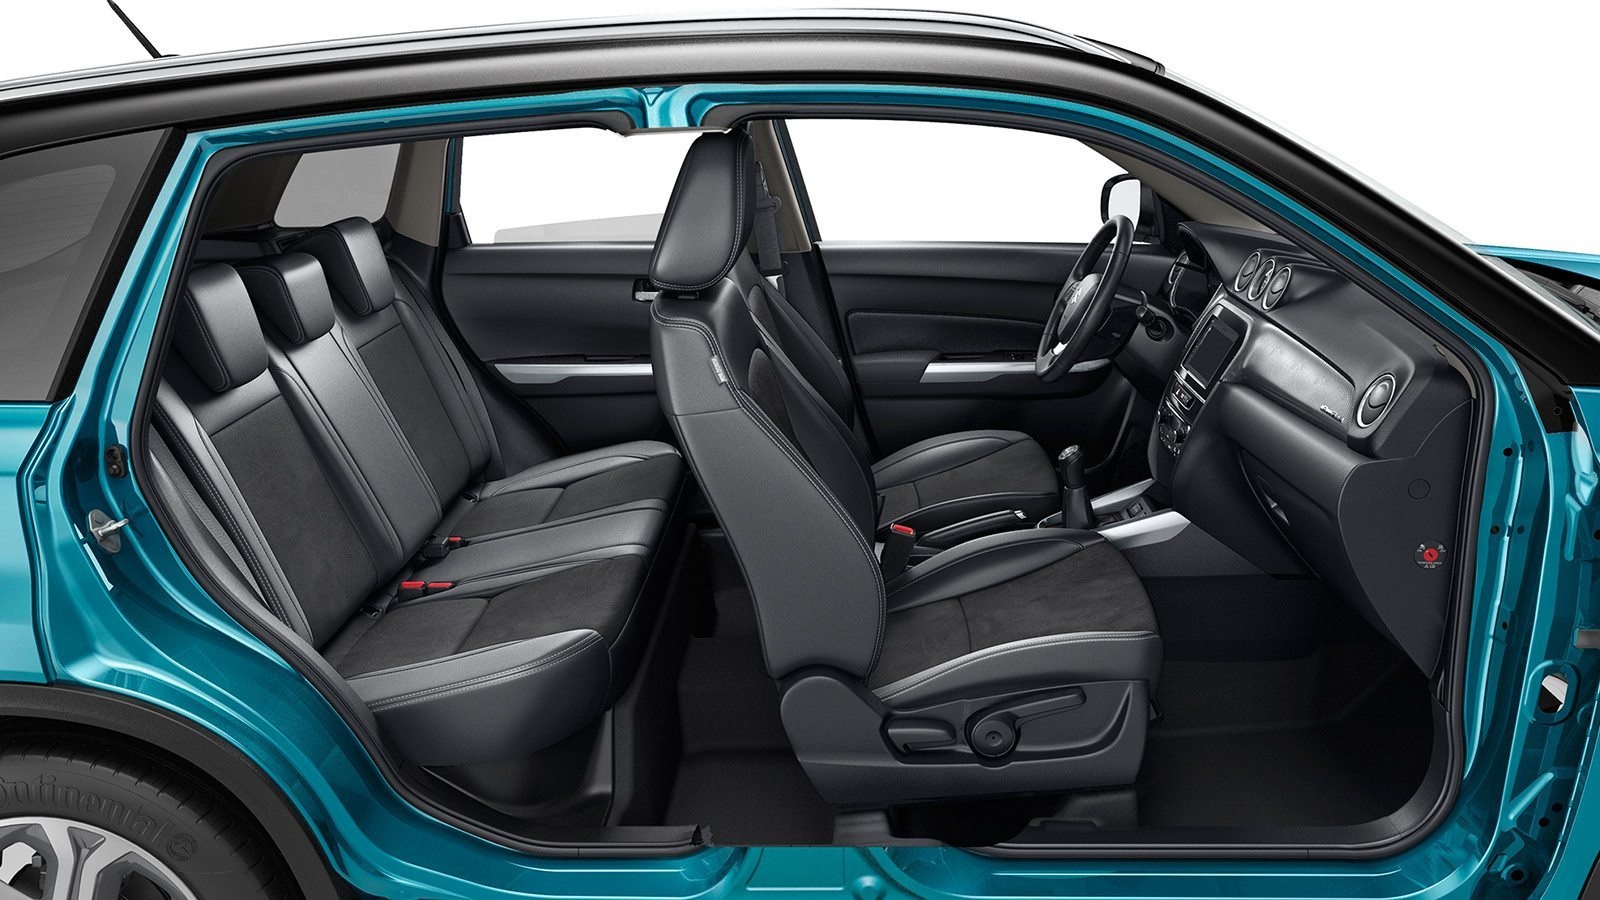 Suzuki Swift Uae Specifications